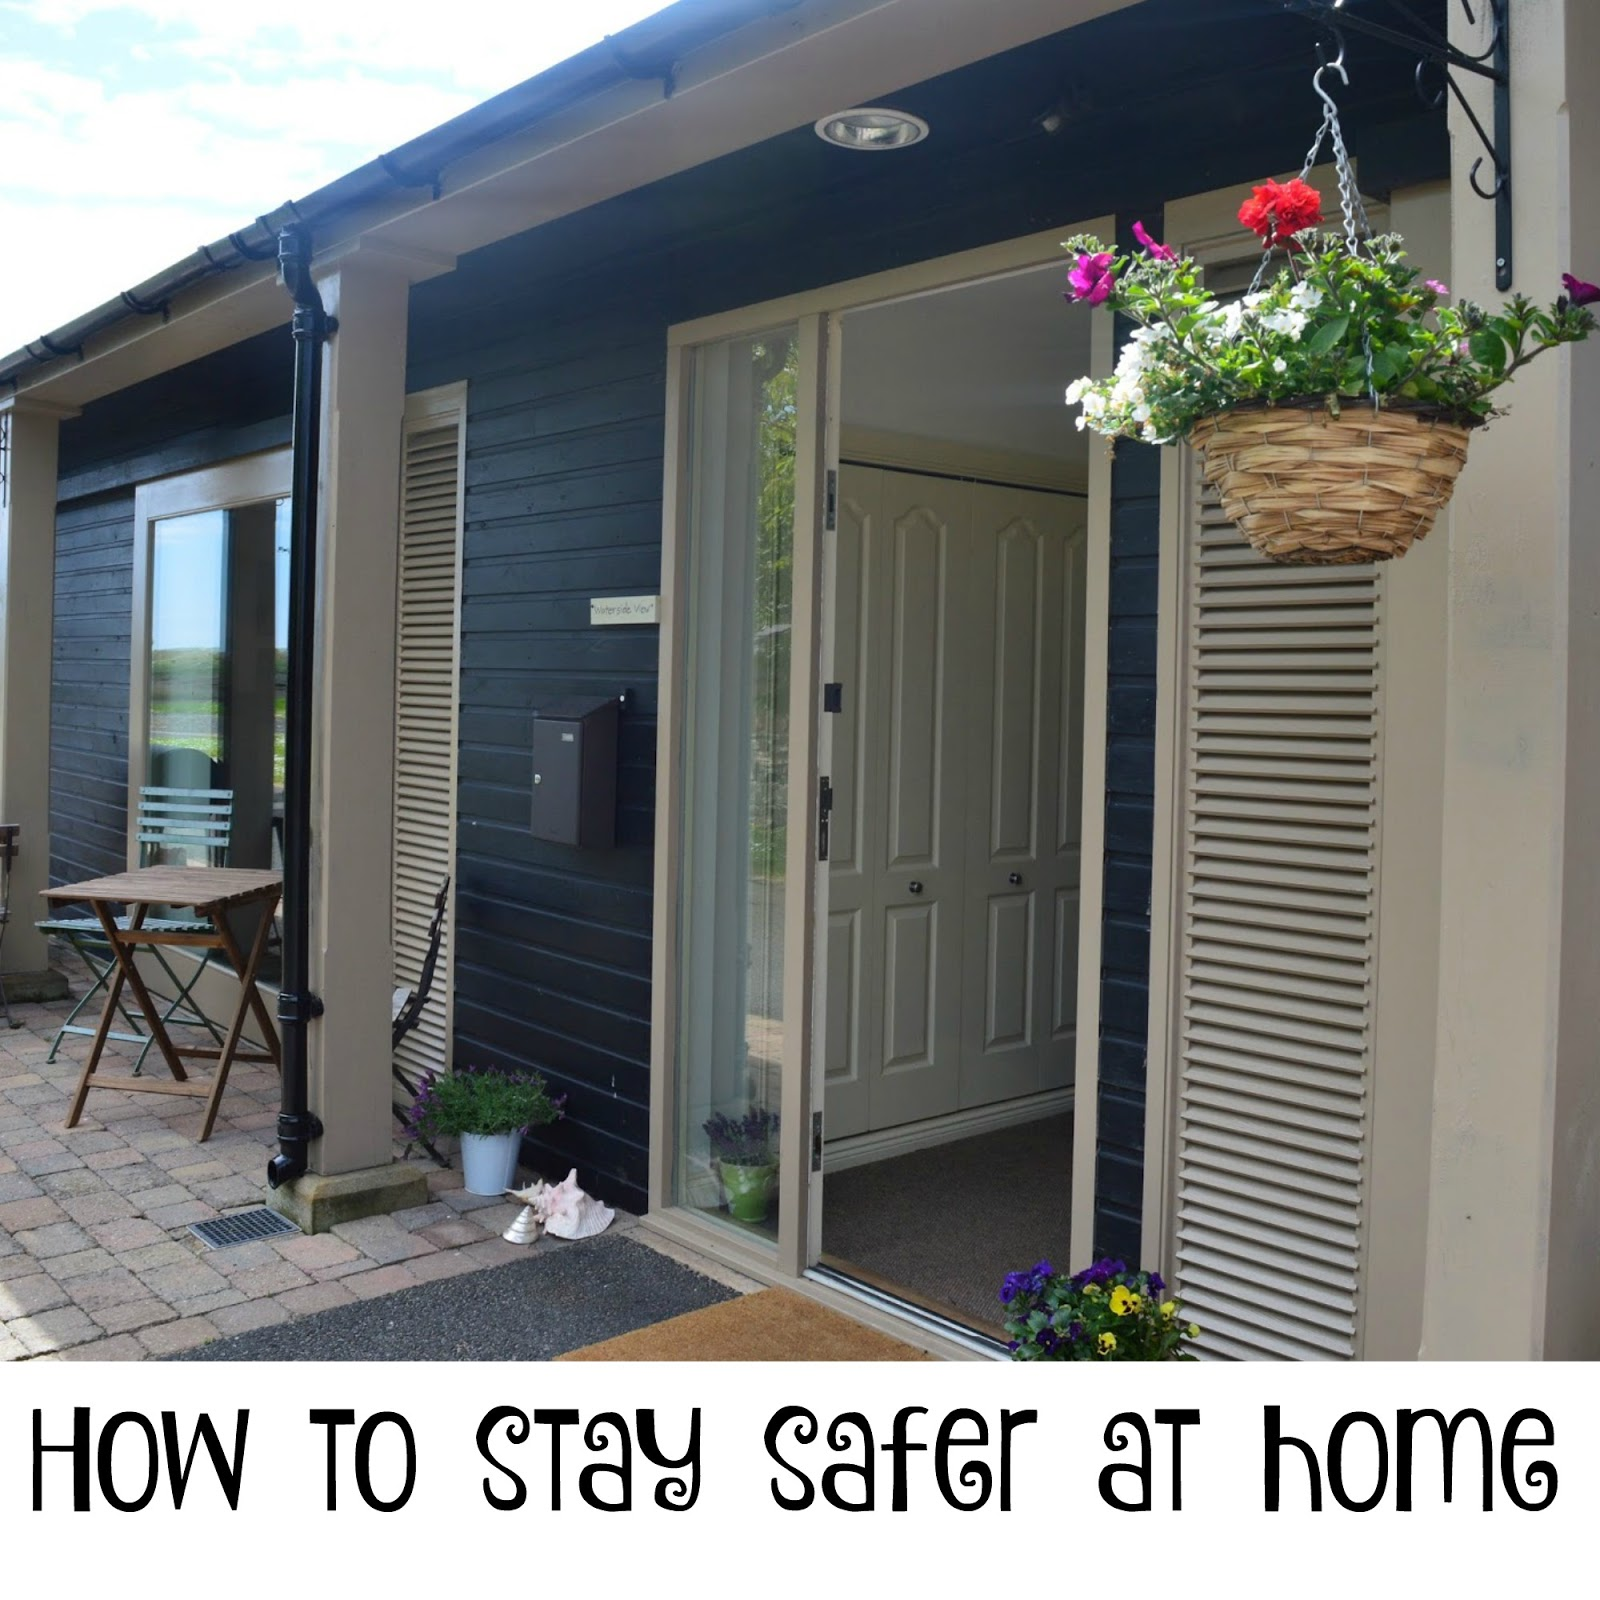 Top tips for staying safe at home